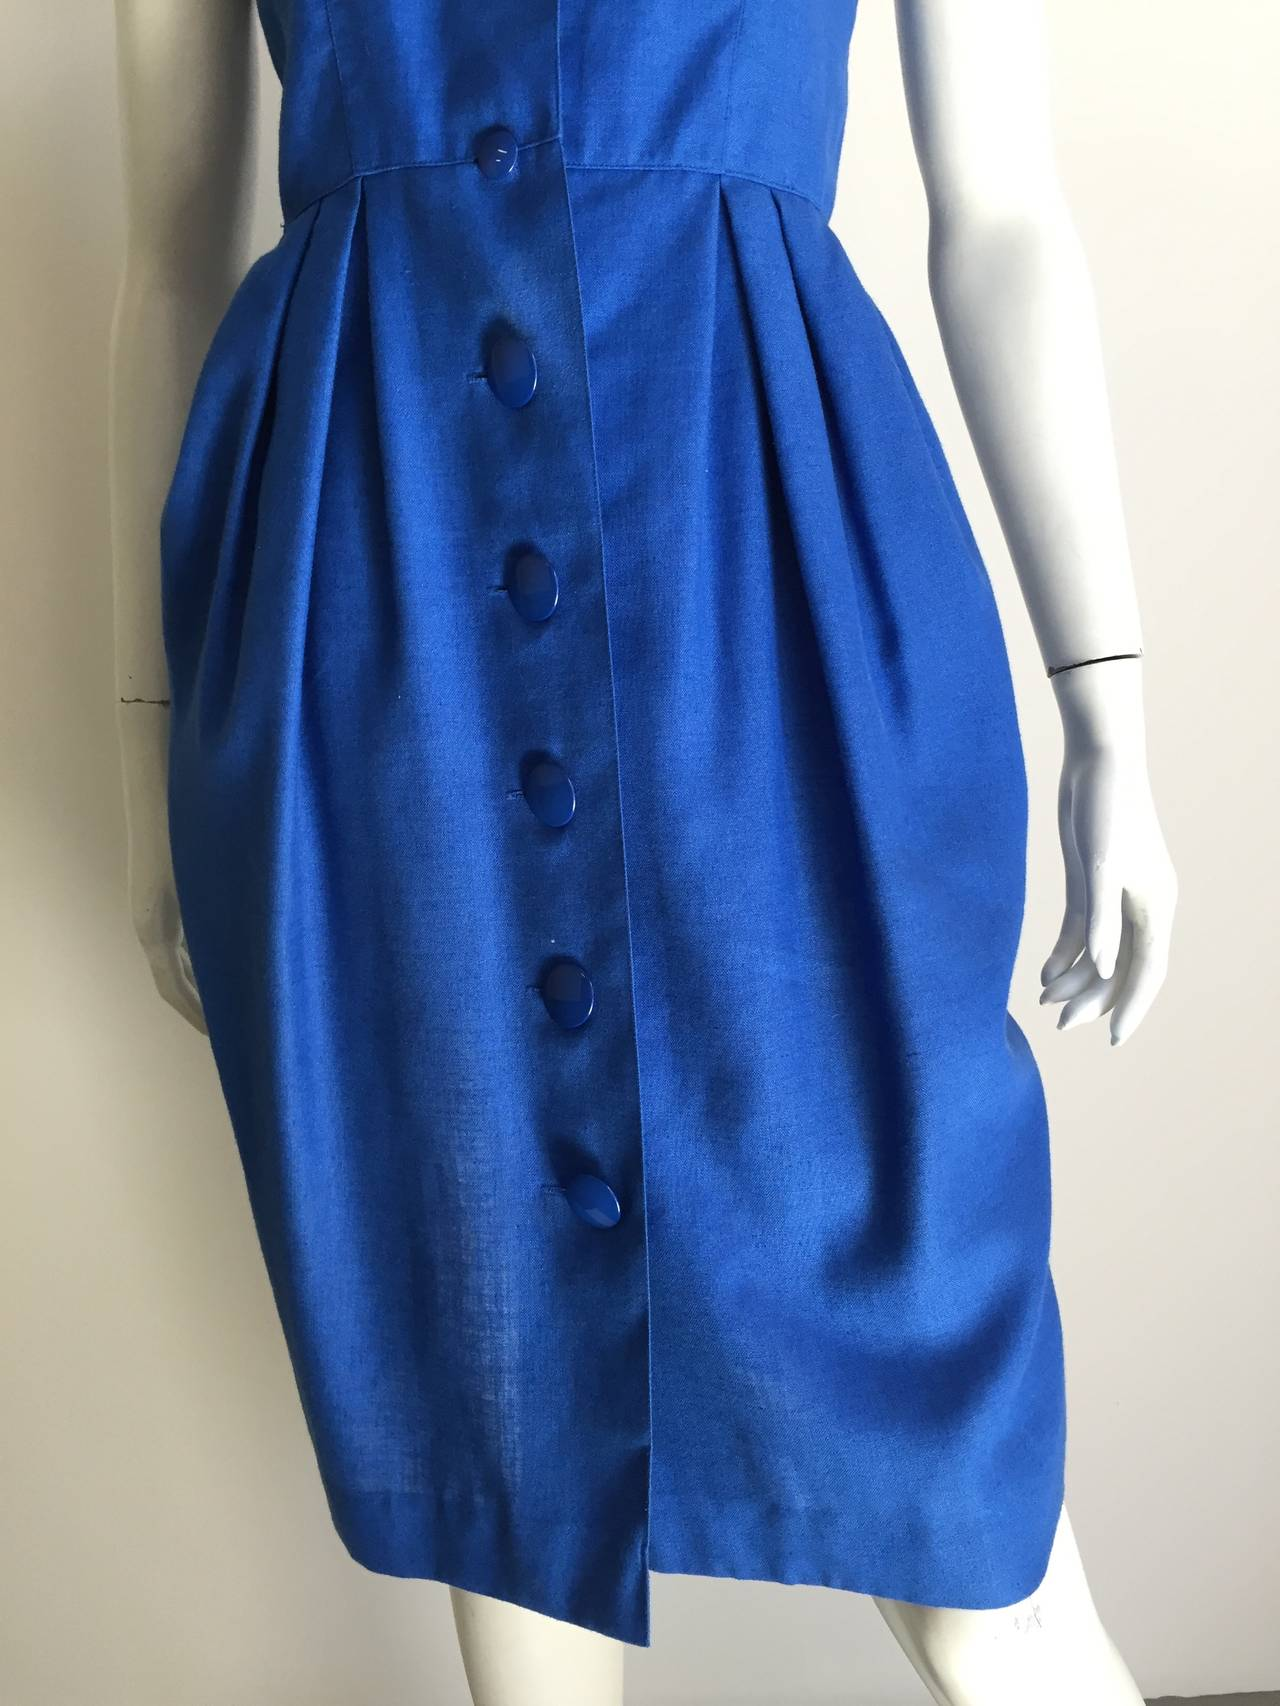 Guy Laroche Paris 80s blue dress with pockets size 6. 4